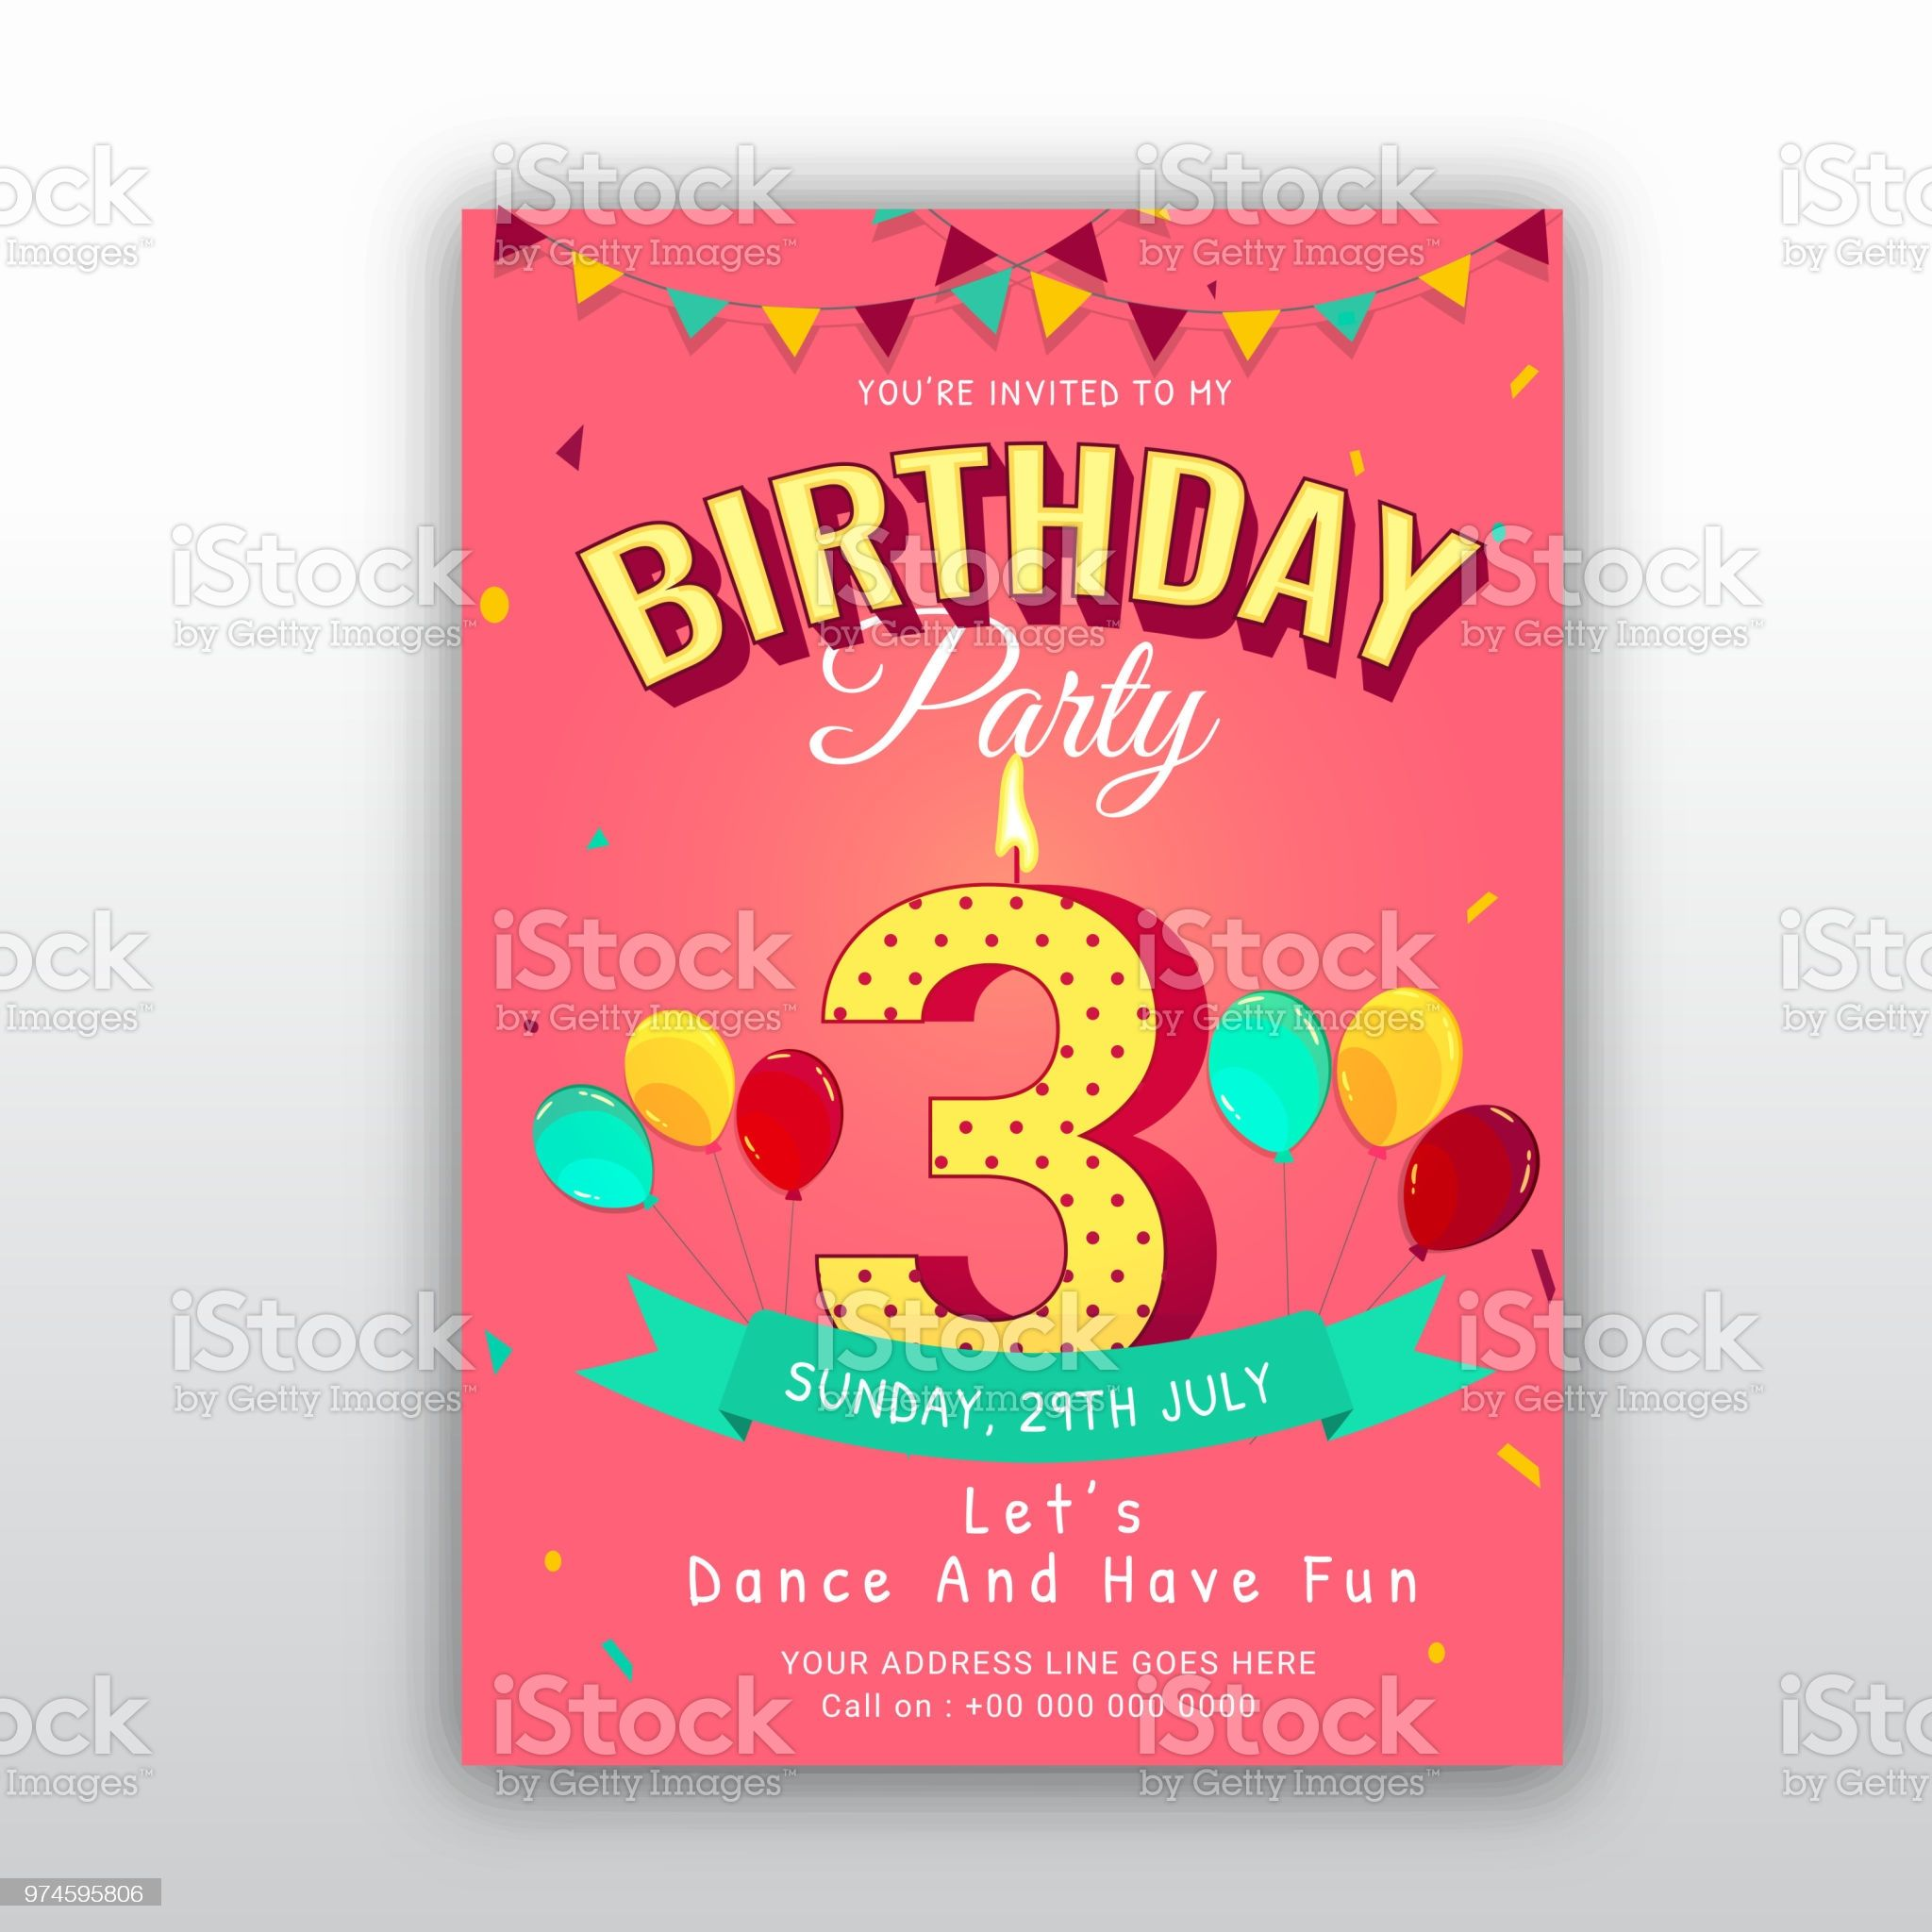 birthday card invitation template with number 3 3rd birthday invitation design birthday birthday card gif printable birthday invitations